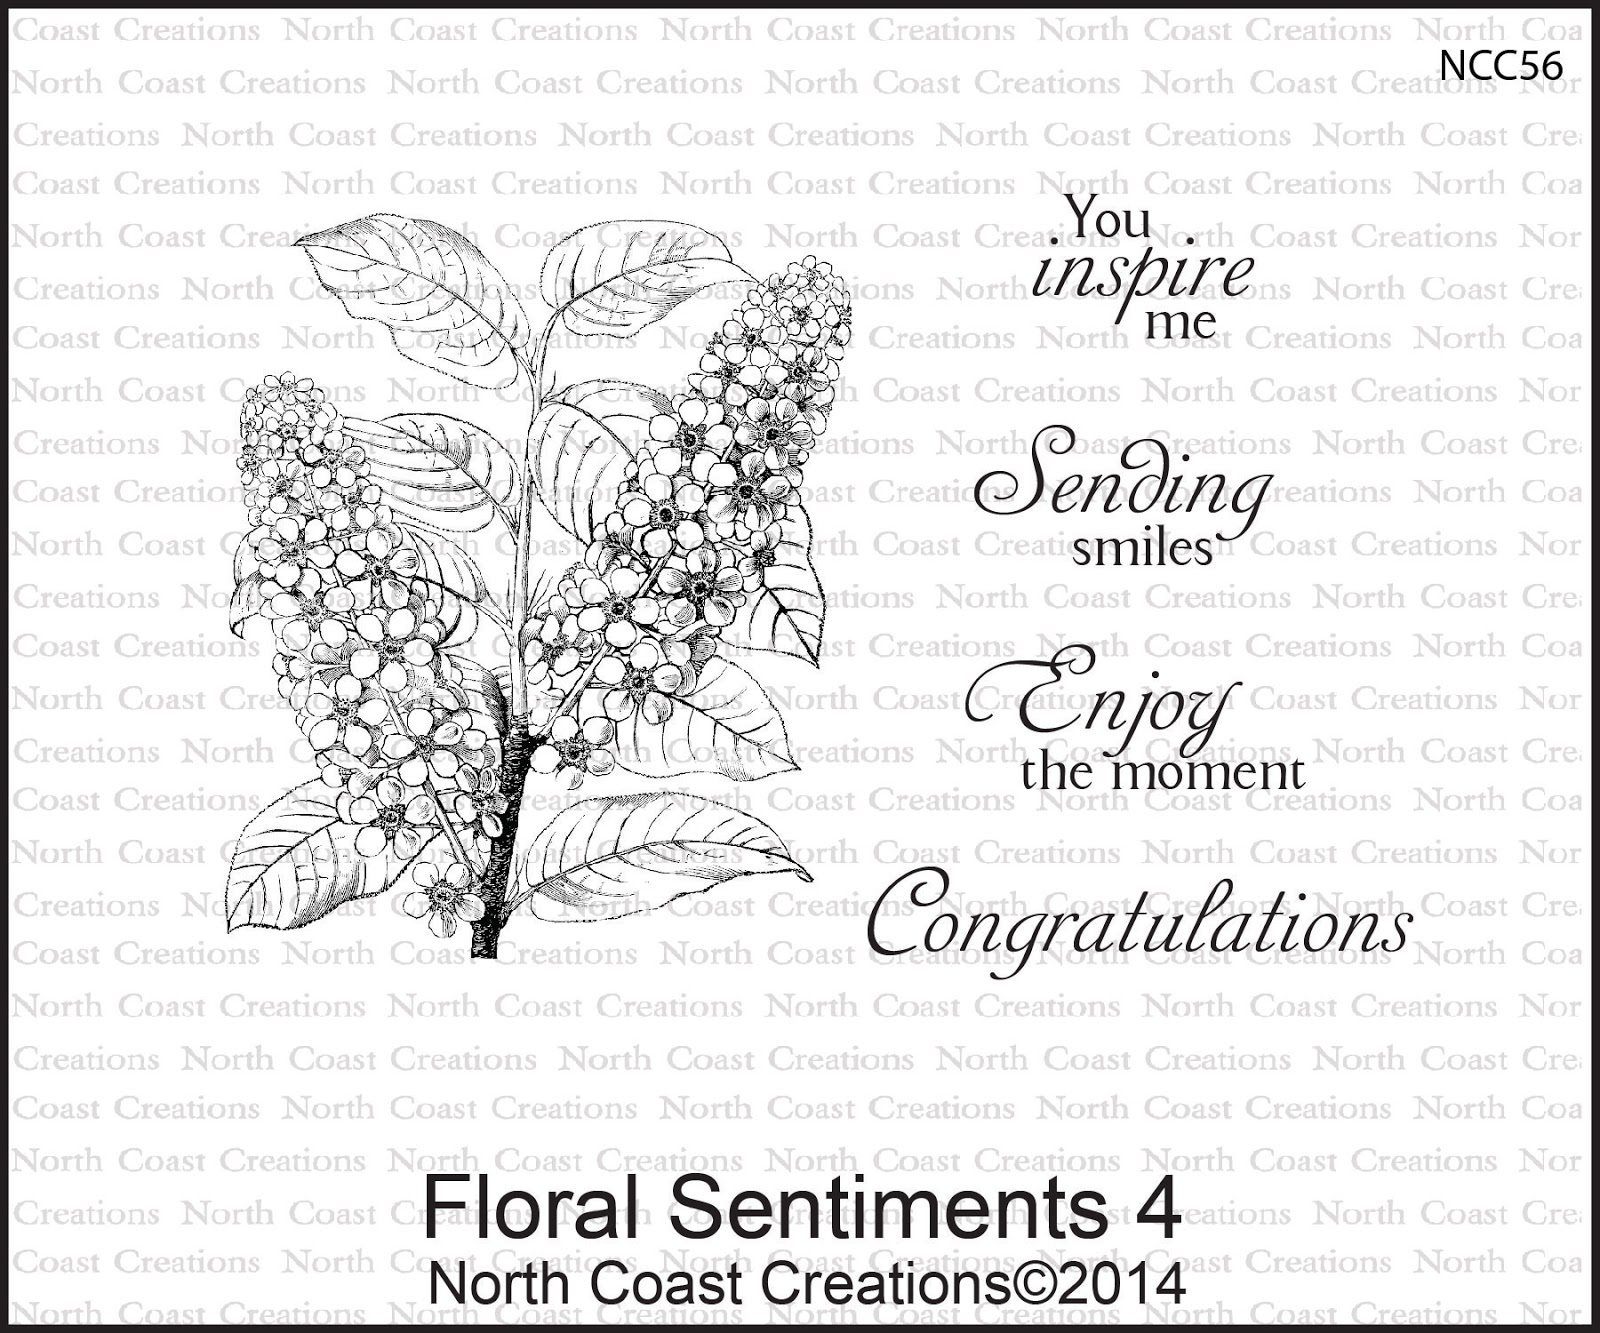 http://www.northcoastcreations.com/index.php/new-releases/ncc56-floral-sentiments-4.html